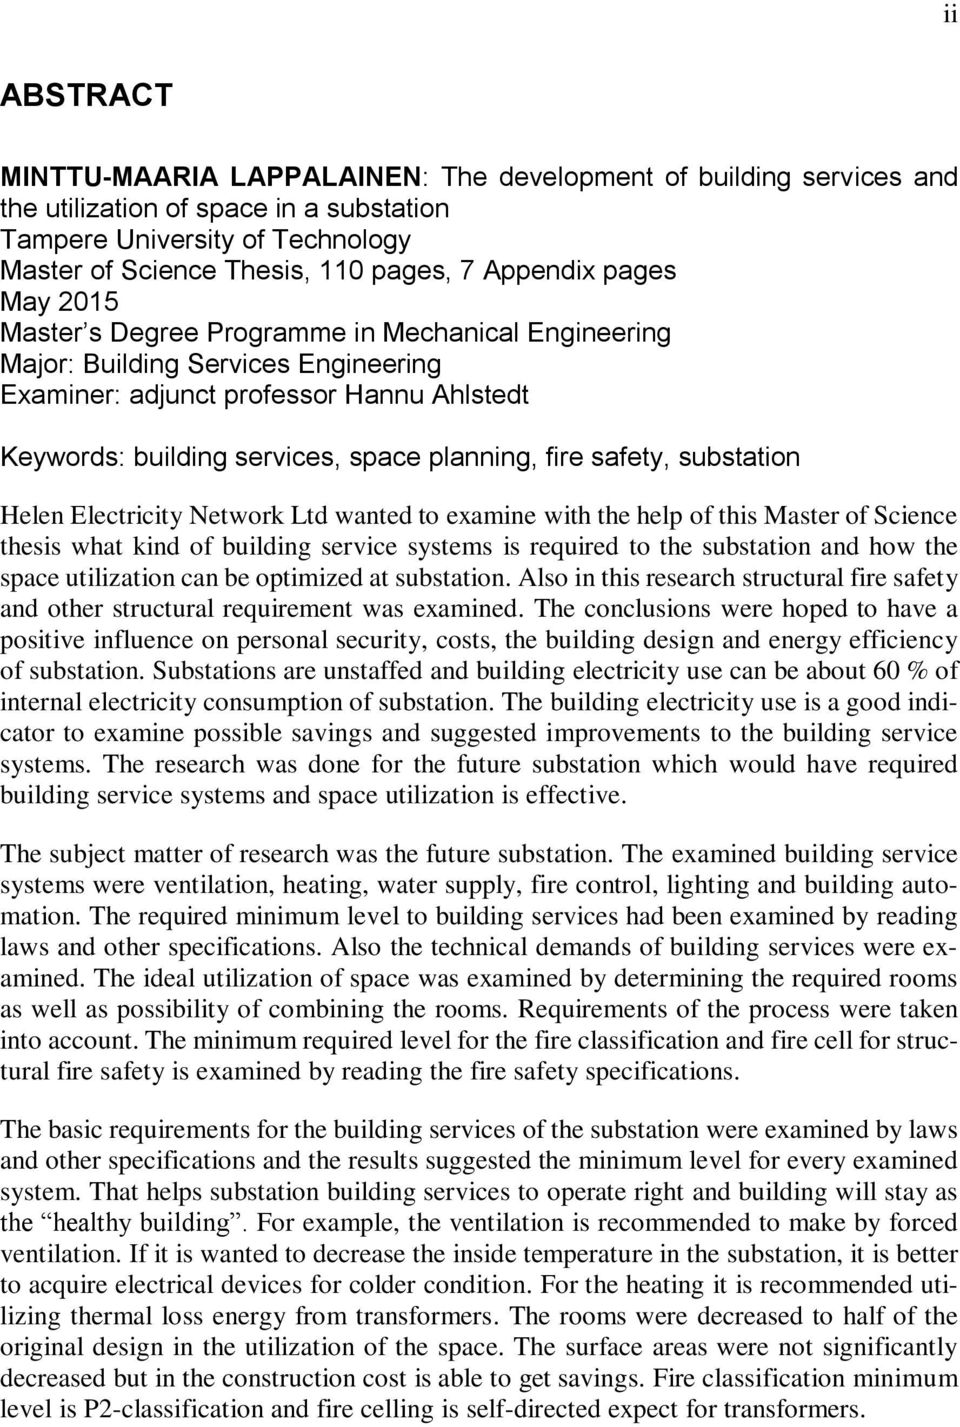 planning, fire safety, substation Helen Electricity Network Ltd wanted to examine with the help of this Master of Science thesis what kind of building service systems is required to the substation